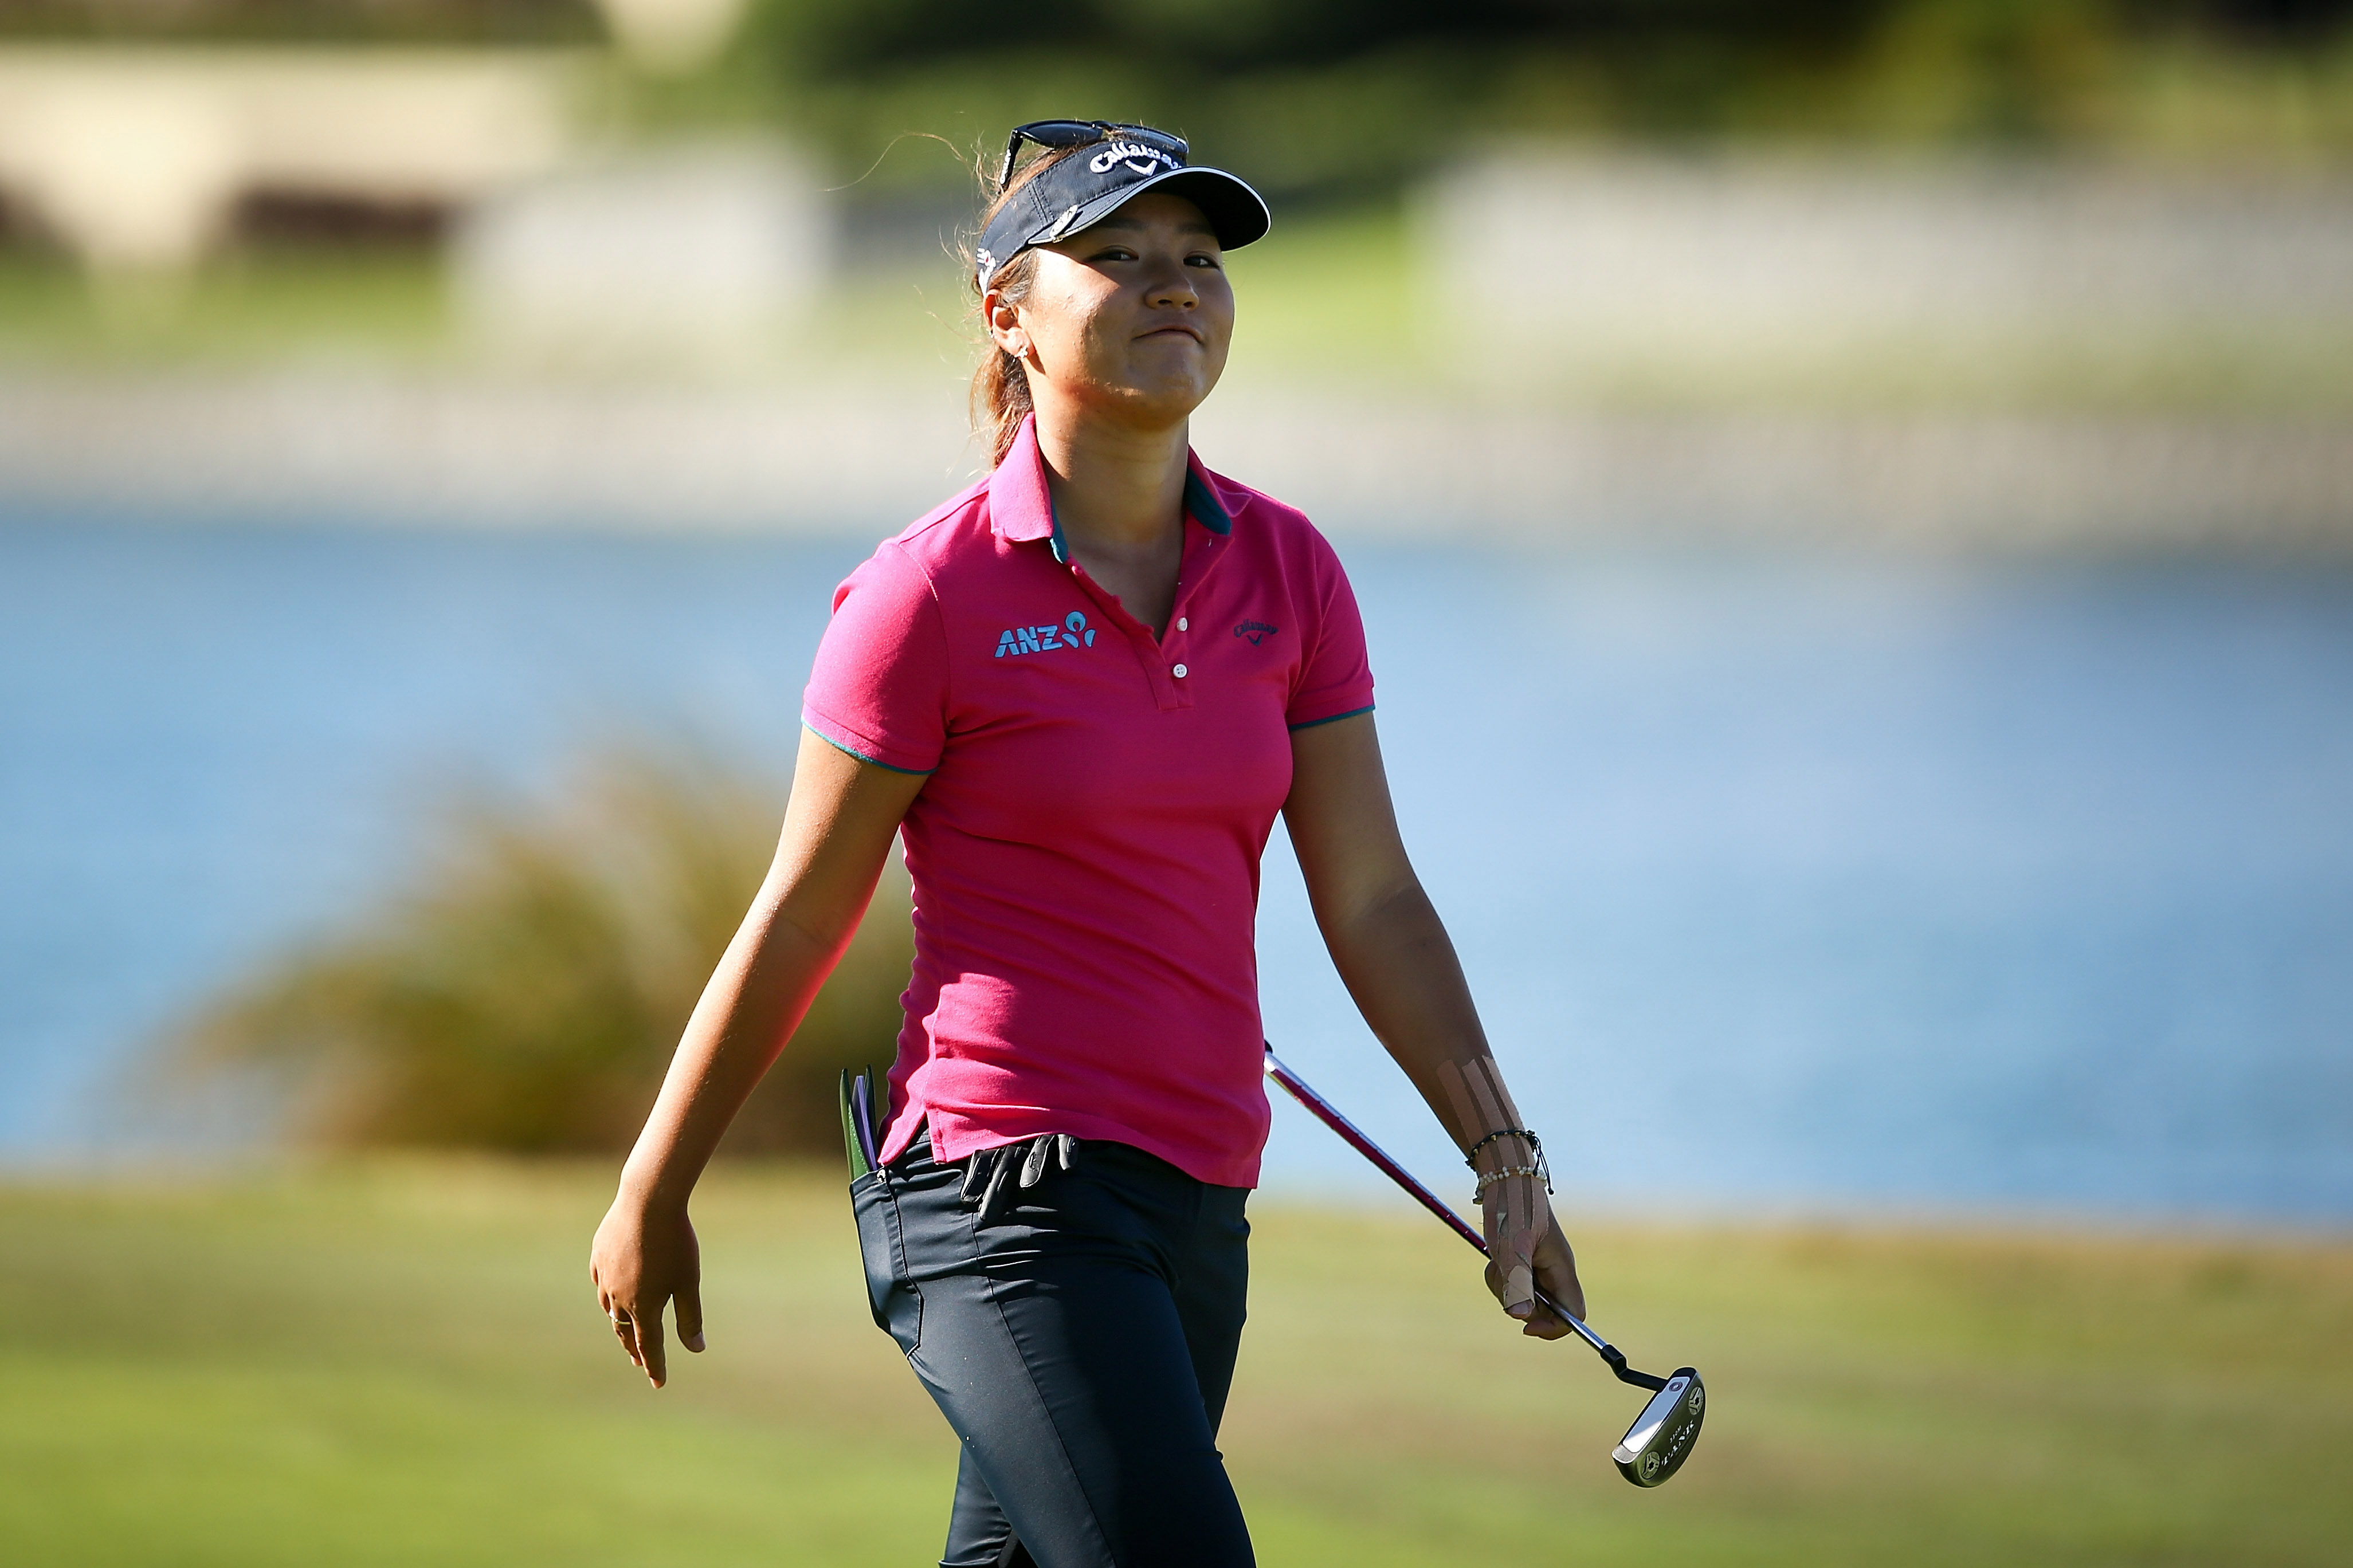 Lydia Ko smiles as she walks down the 18th fairway New Zealand Women's Open on Sunday in Christchurch, New Zealand.